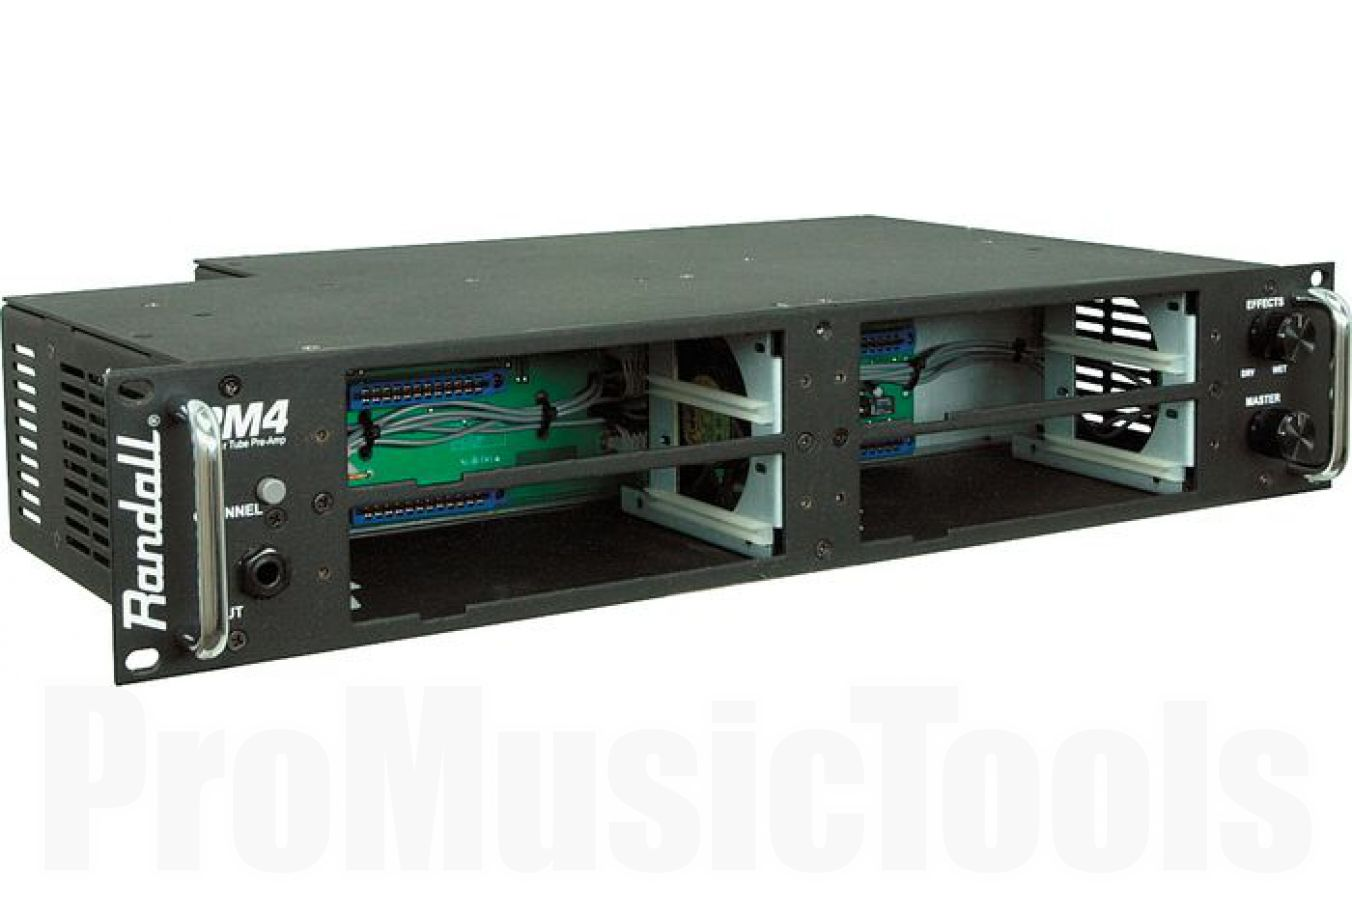 Randall USA RM4 MTS Guitar Rack Preamp Chassis - demo